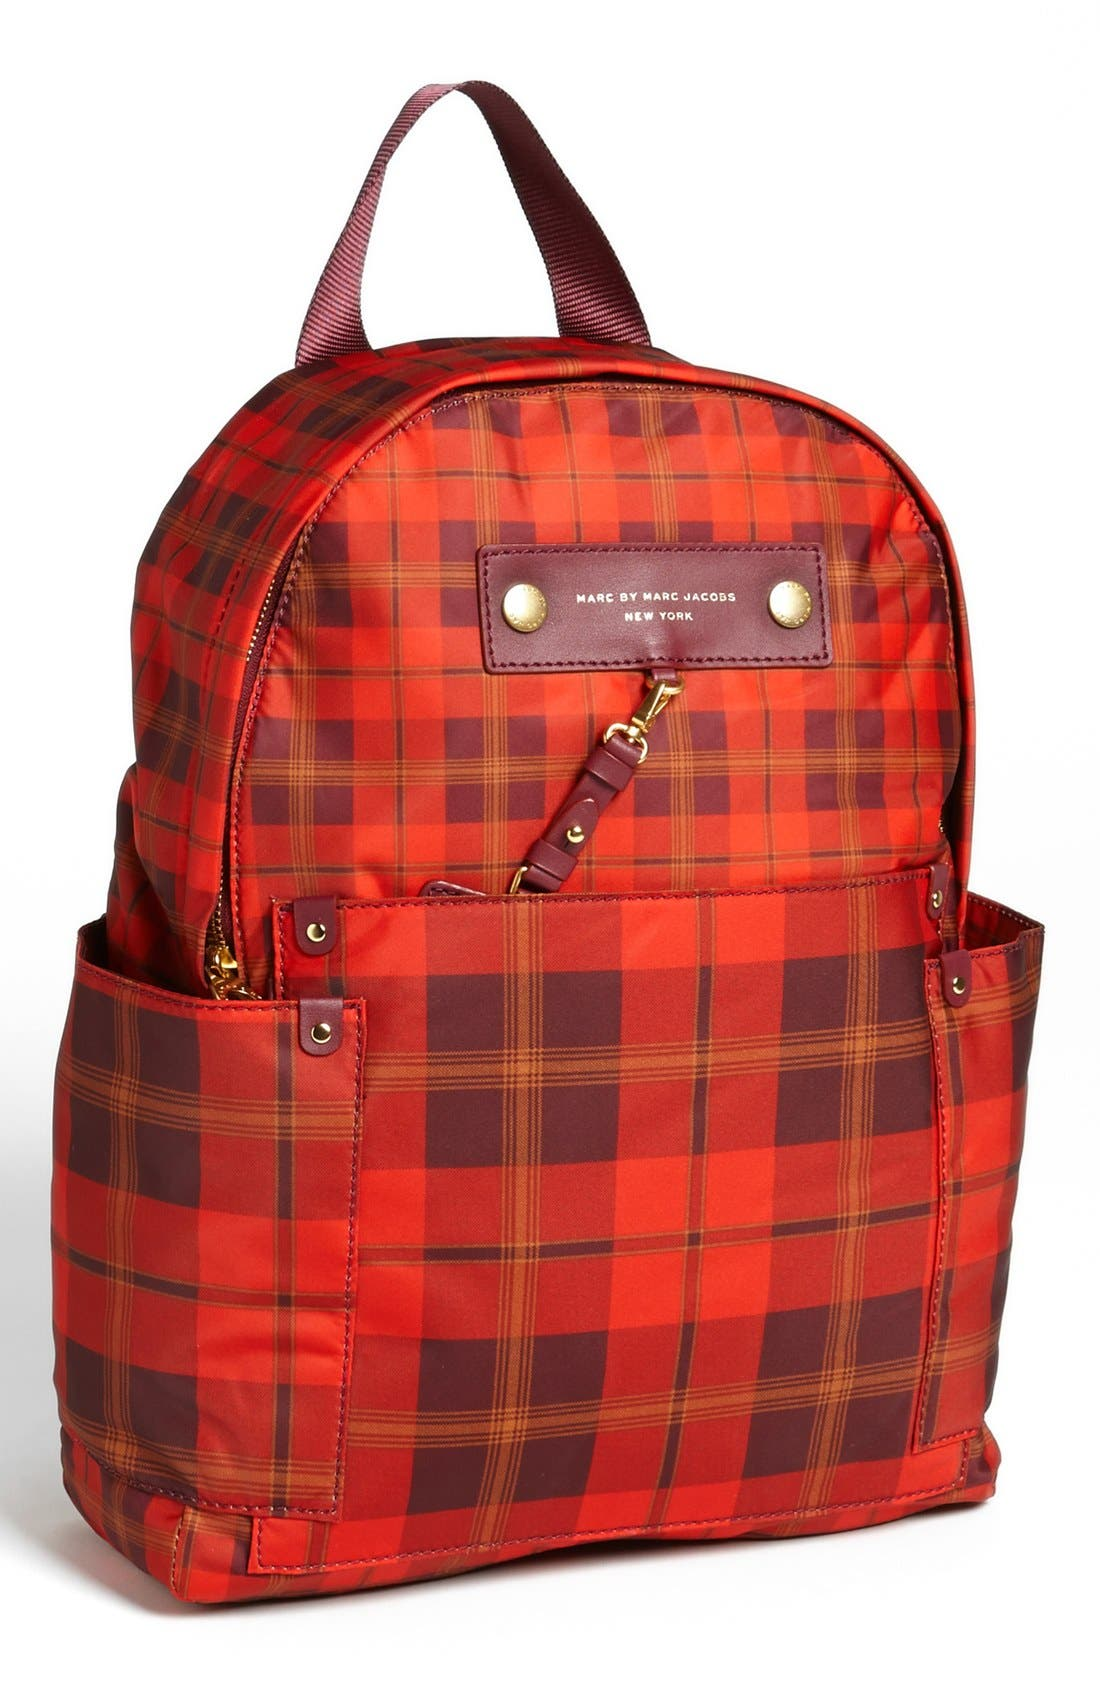 Alternate Image 1 Selected - MARC BY MARC JACOBS 'Preppy Nylon' Backpack